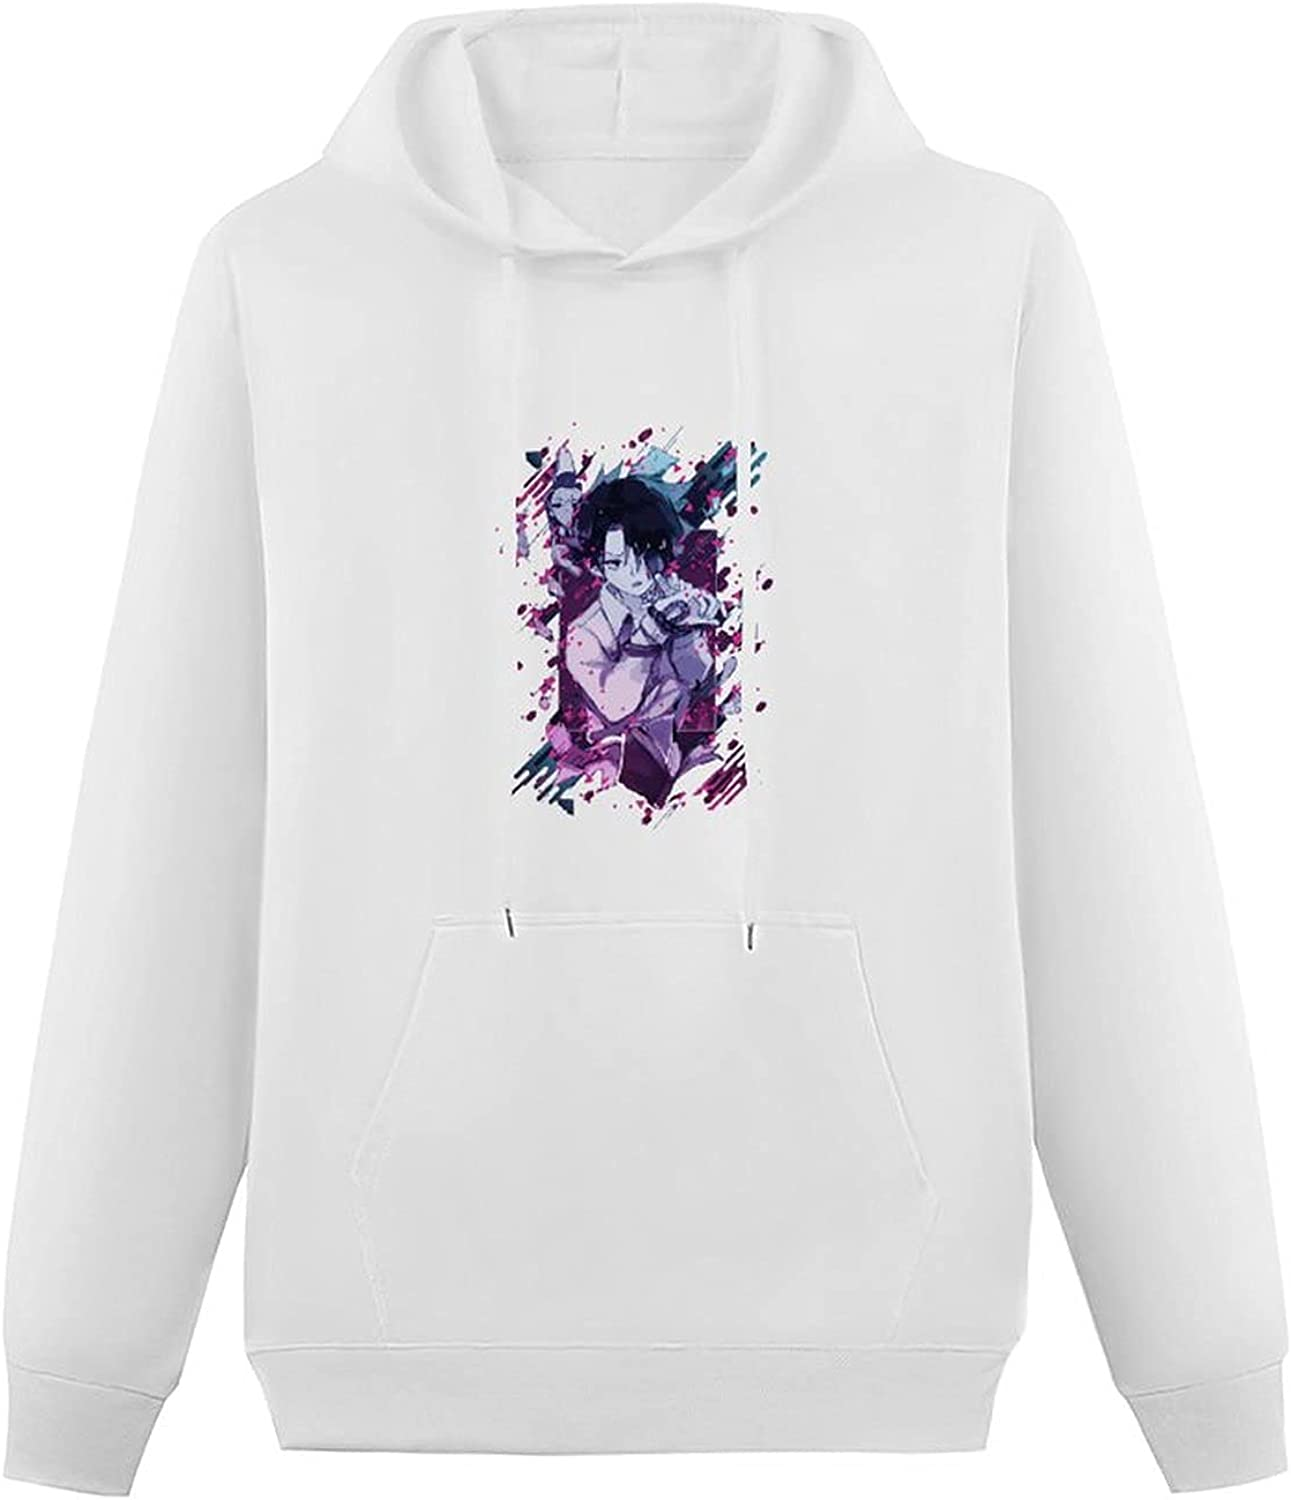 Anime The Promised Neverland Teen Hooded Sweatshirt, Personality Pullover Hoodie Sweater with Pockets for Boys Girls